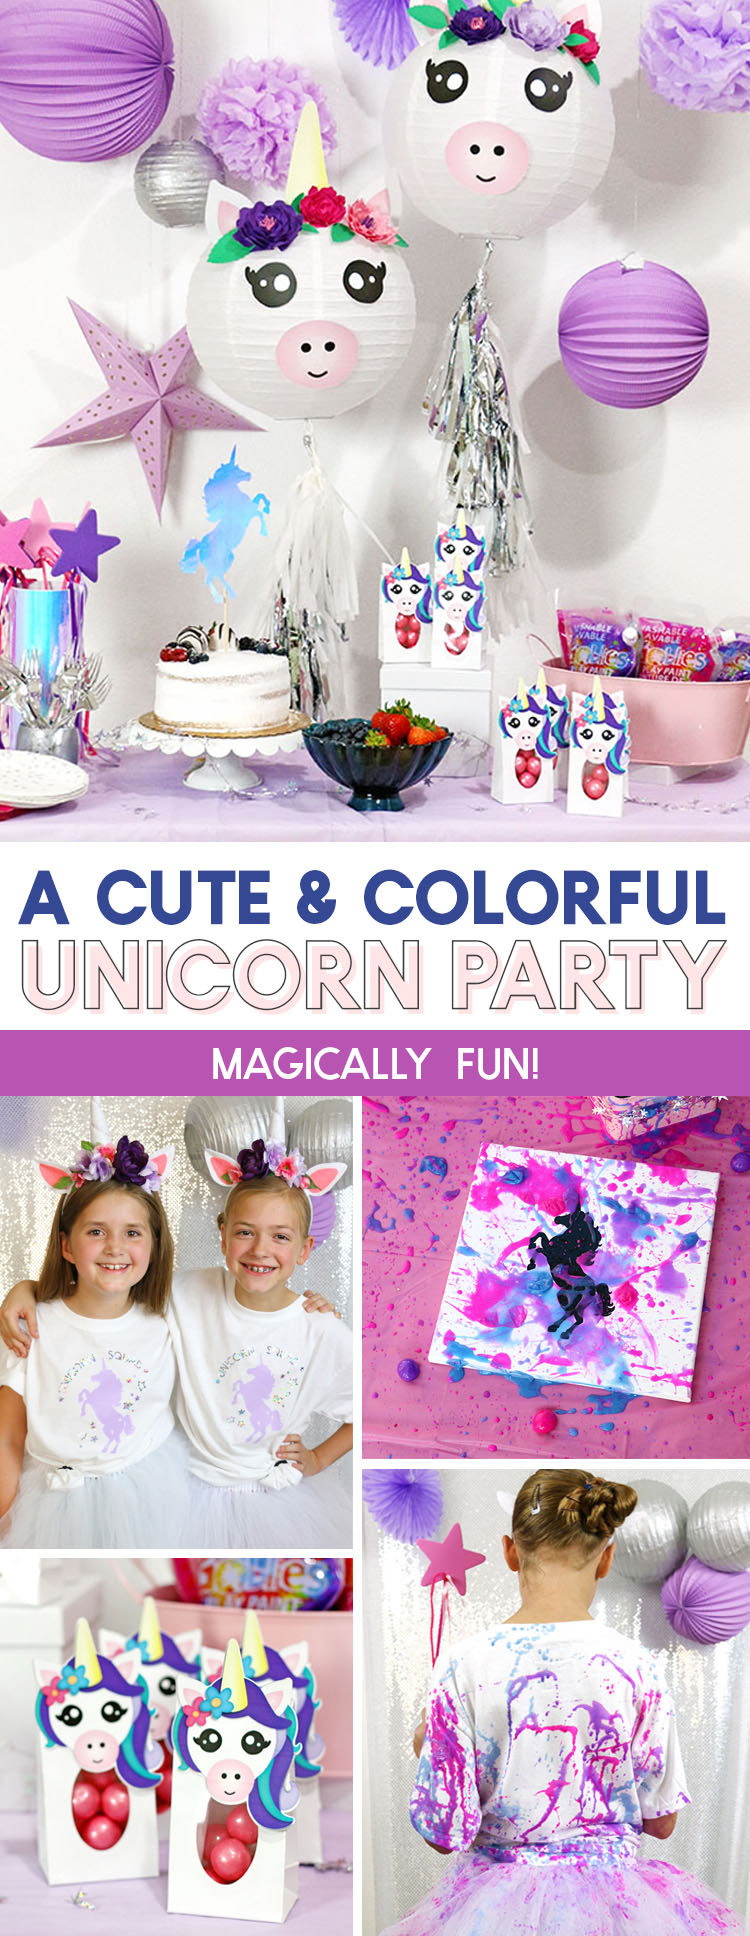 A Cute and Colorful DIY Unicorn Party with Goblies Paint - Persia Lou